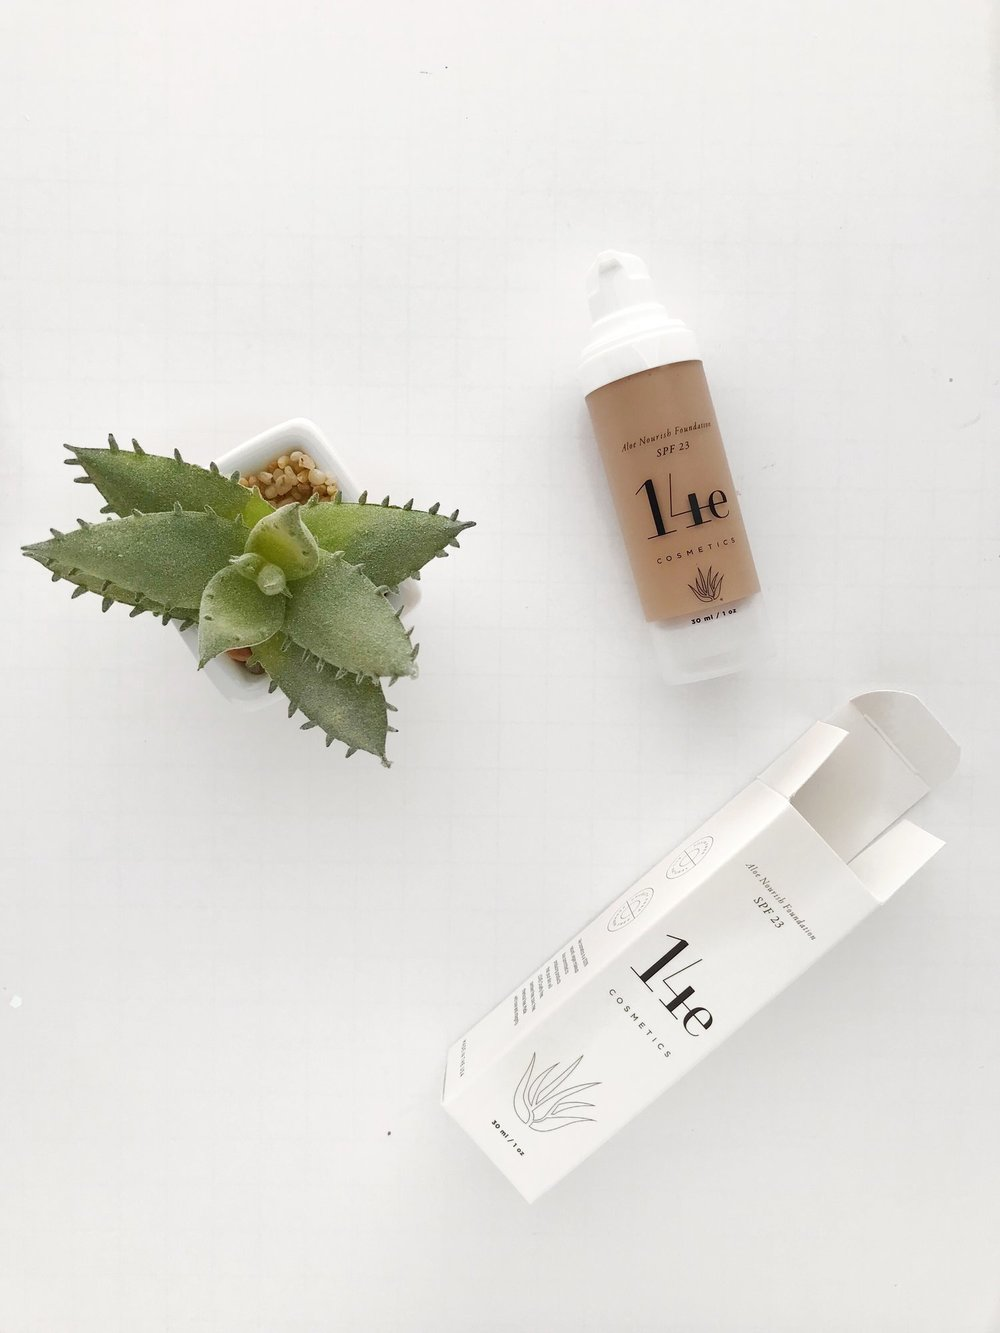 14e-cosmetics-foundation-review-best-of-green-beauty-2018.jpg